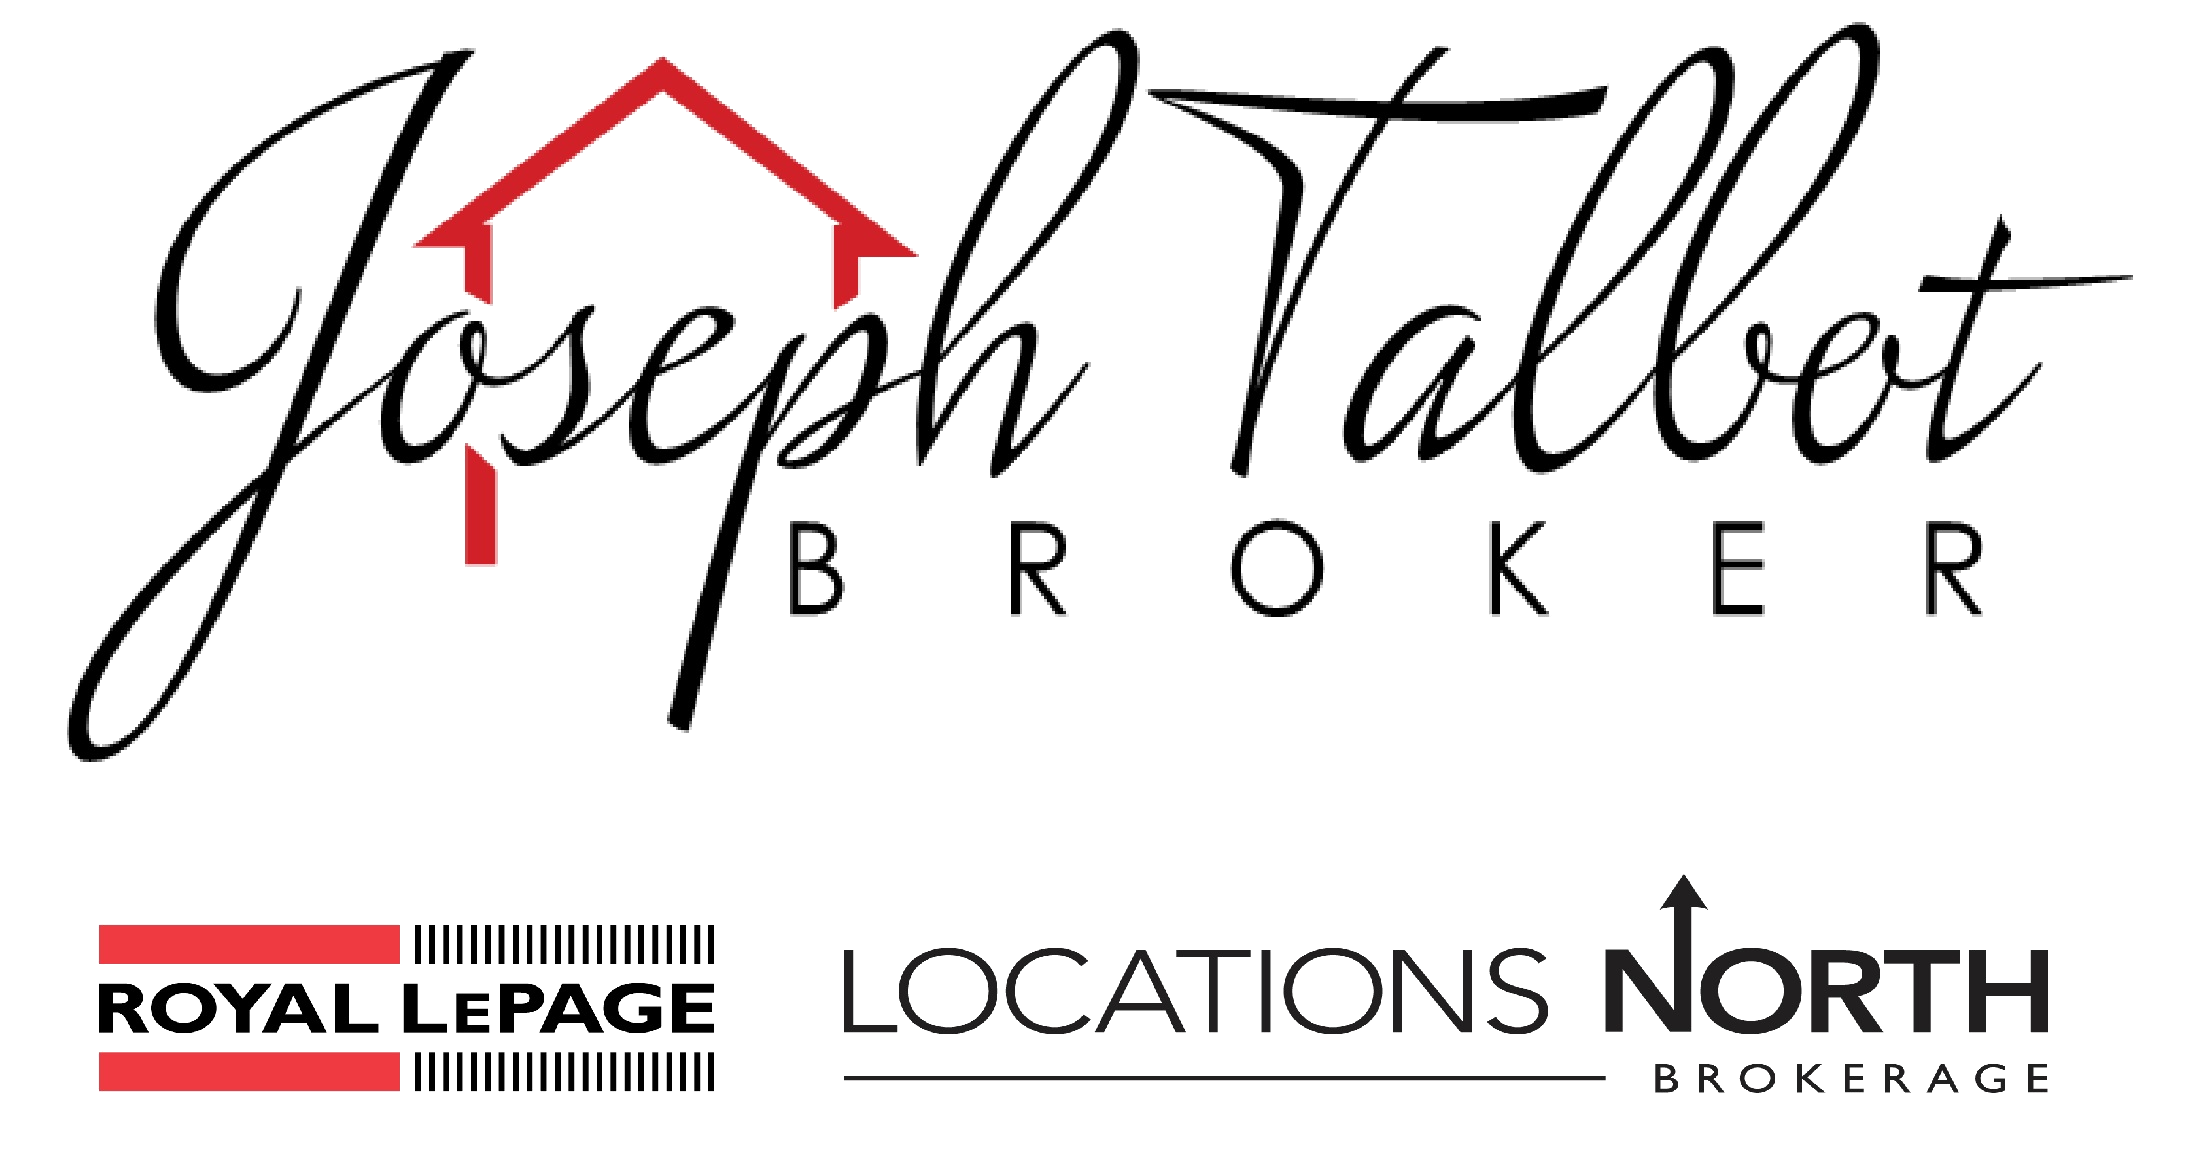 Joseph Talbot Real Estate